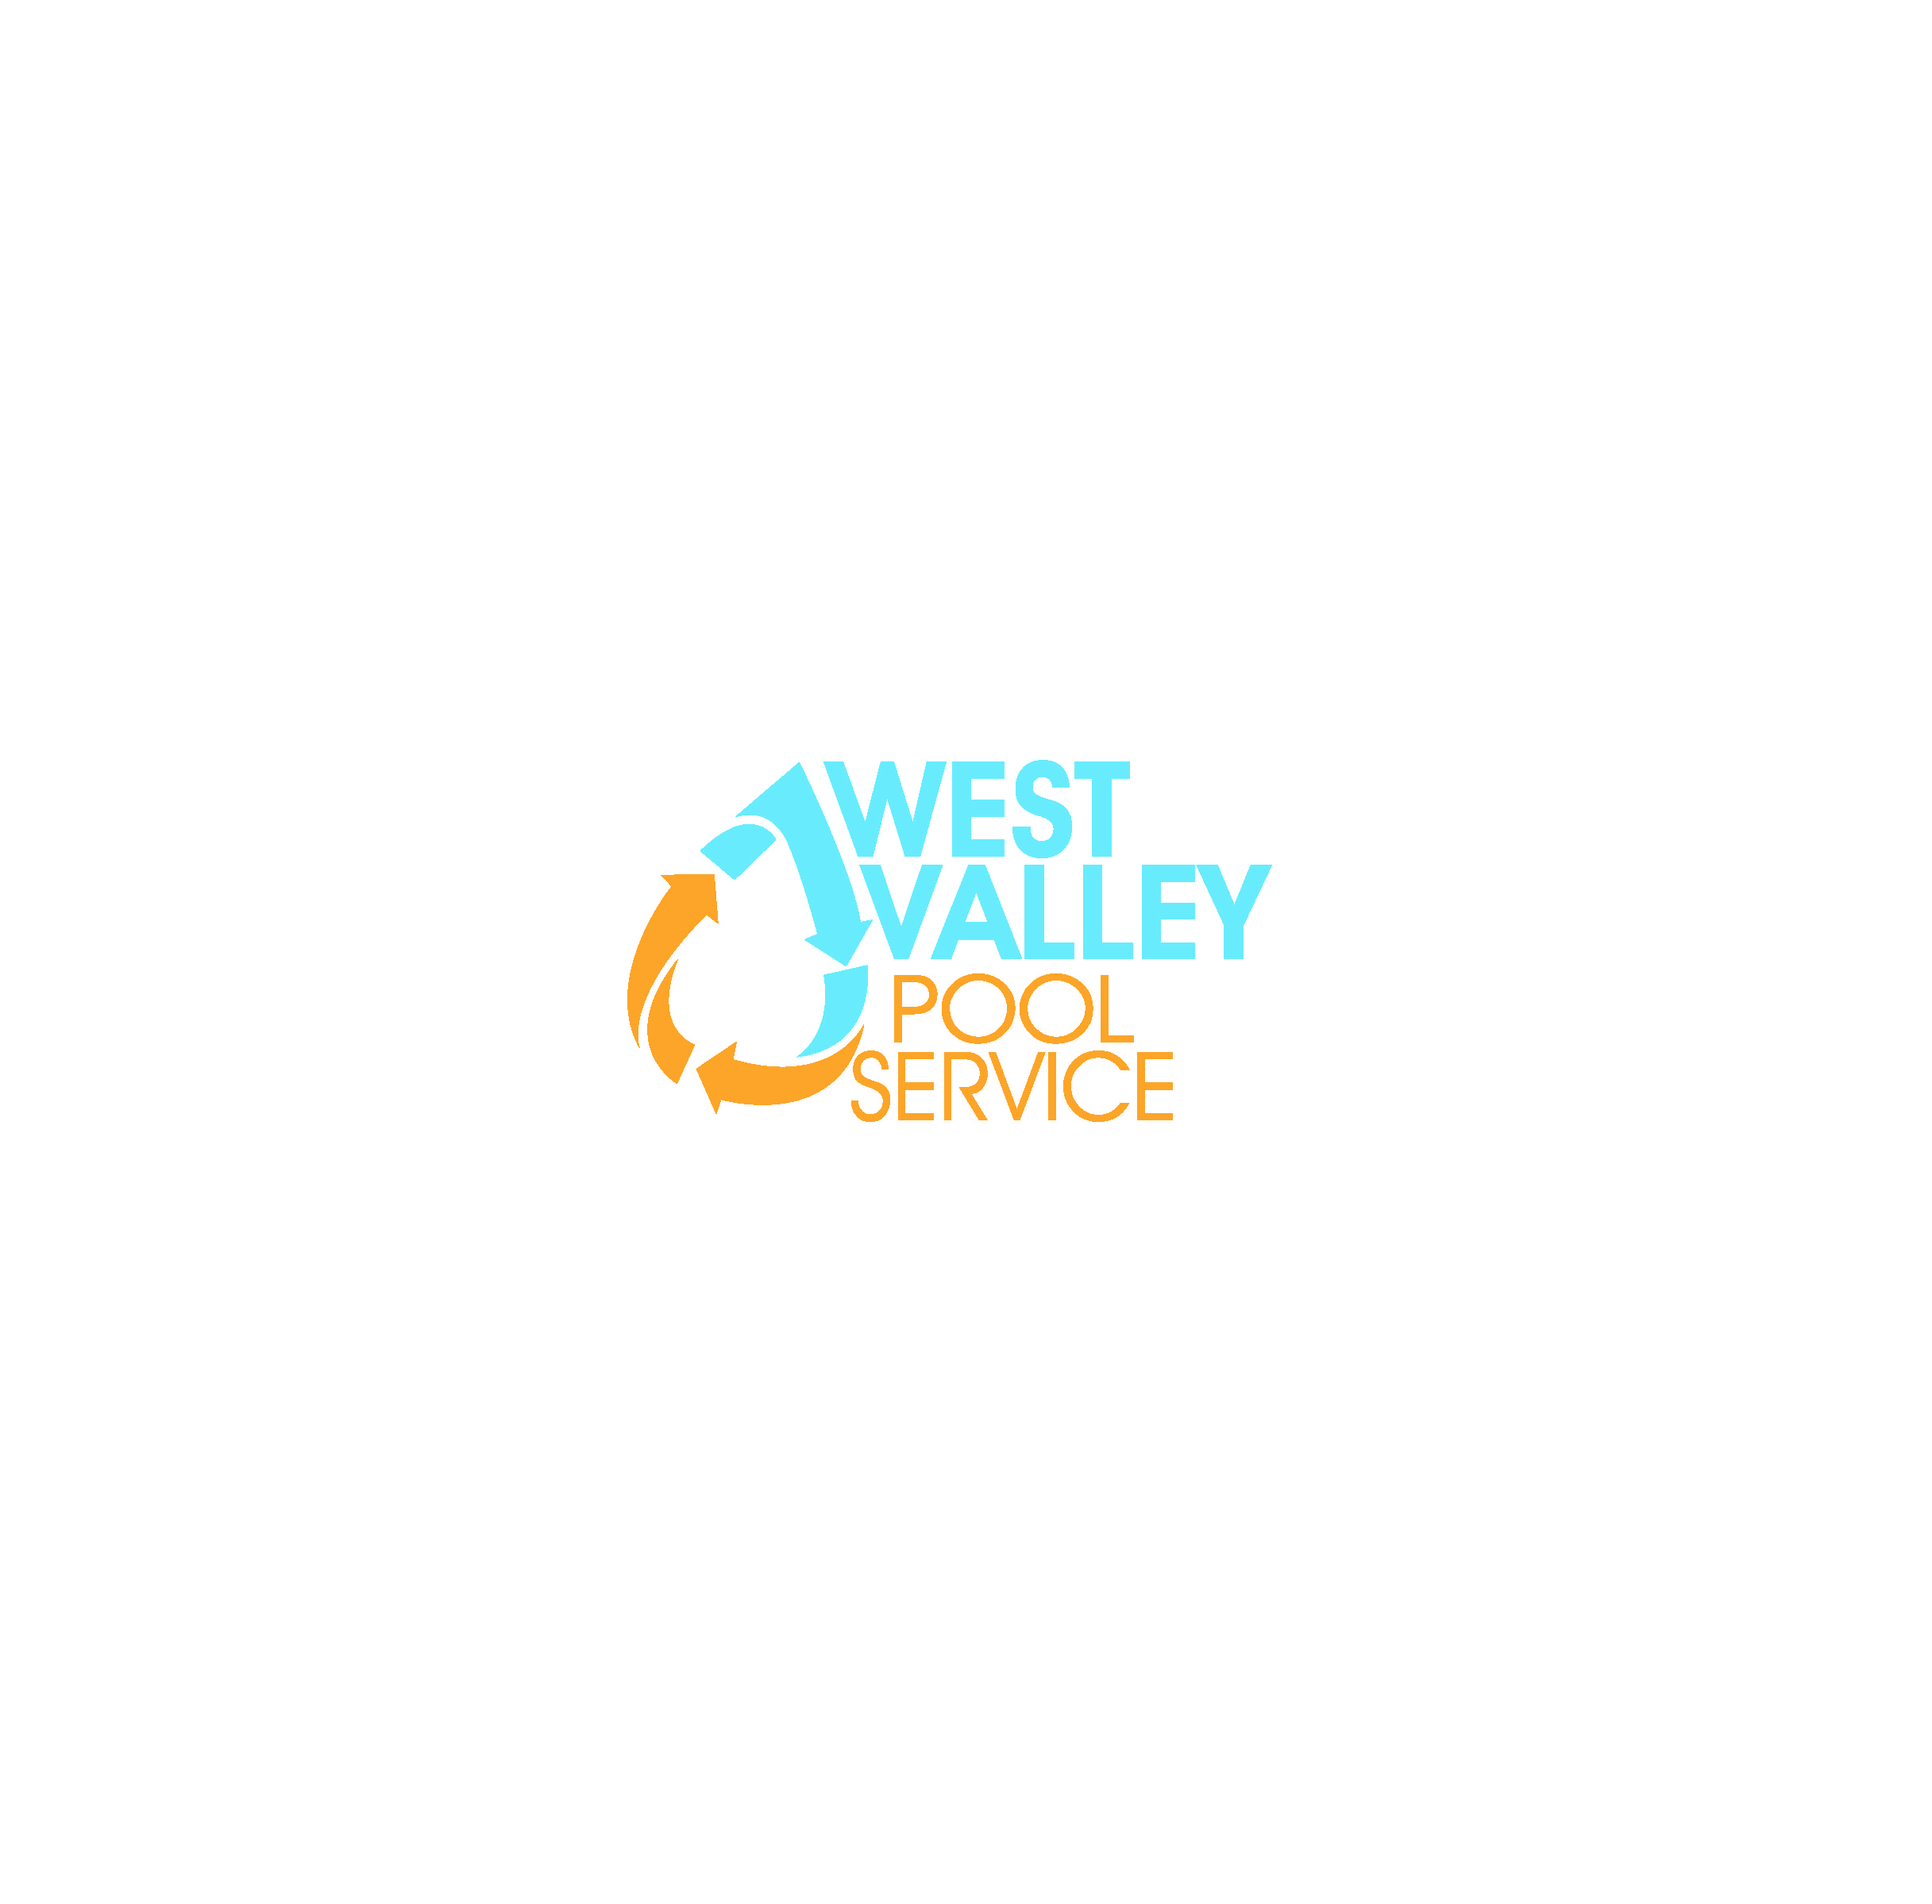 Logo Design by Sampath Gunathilaka - Entry No. 97 in the Logo Design Contest Clever Logo Design for West Valley Pool Service.